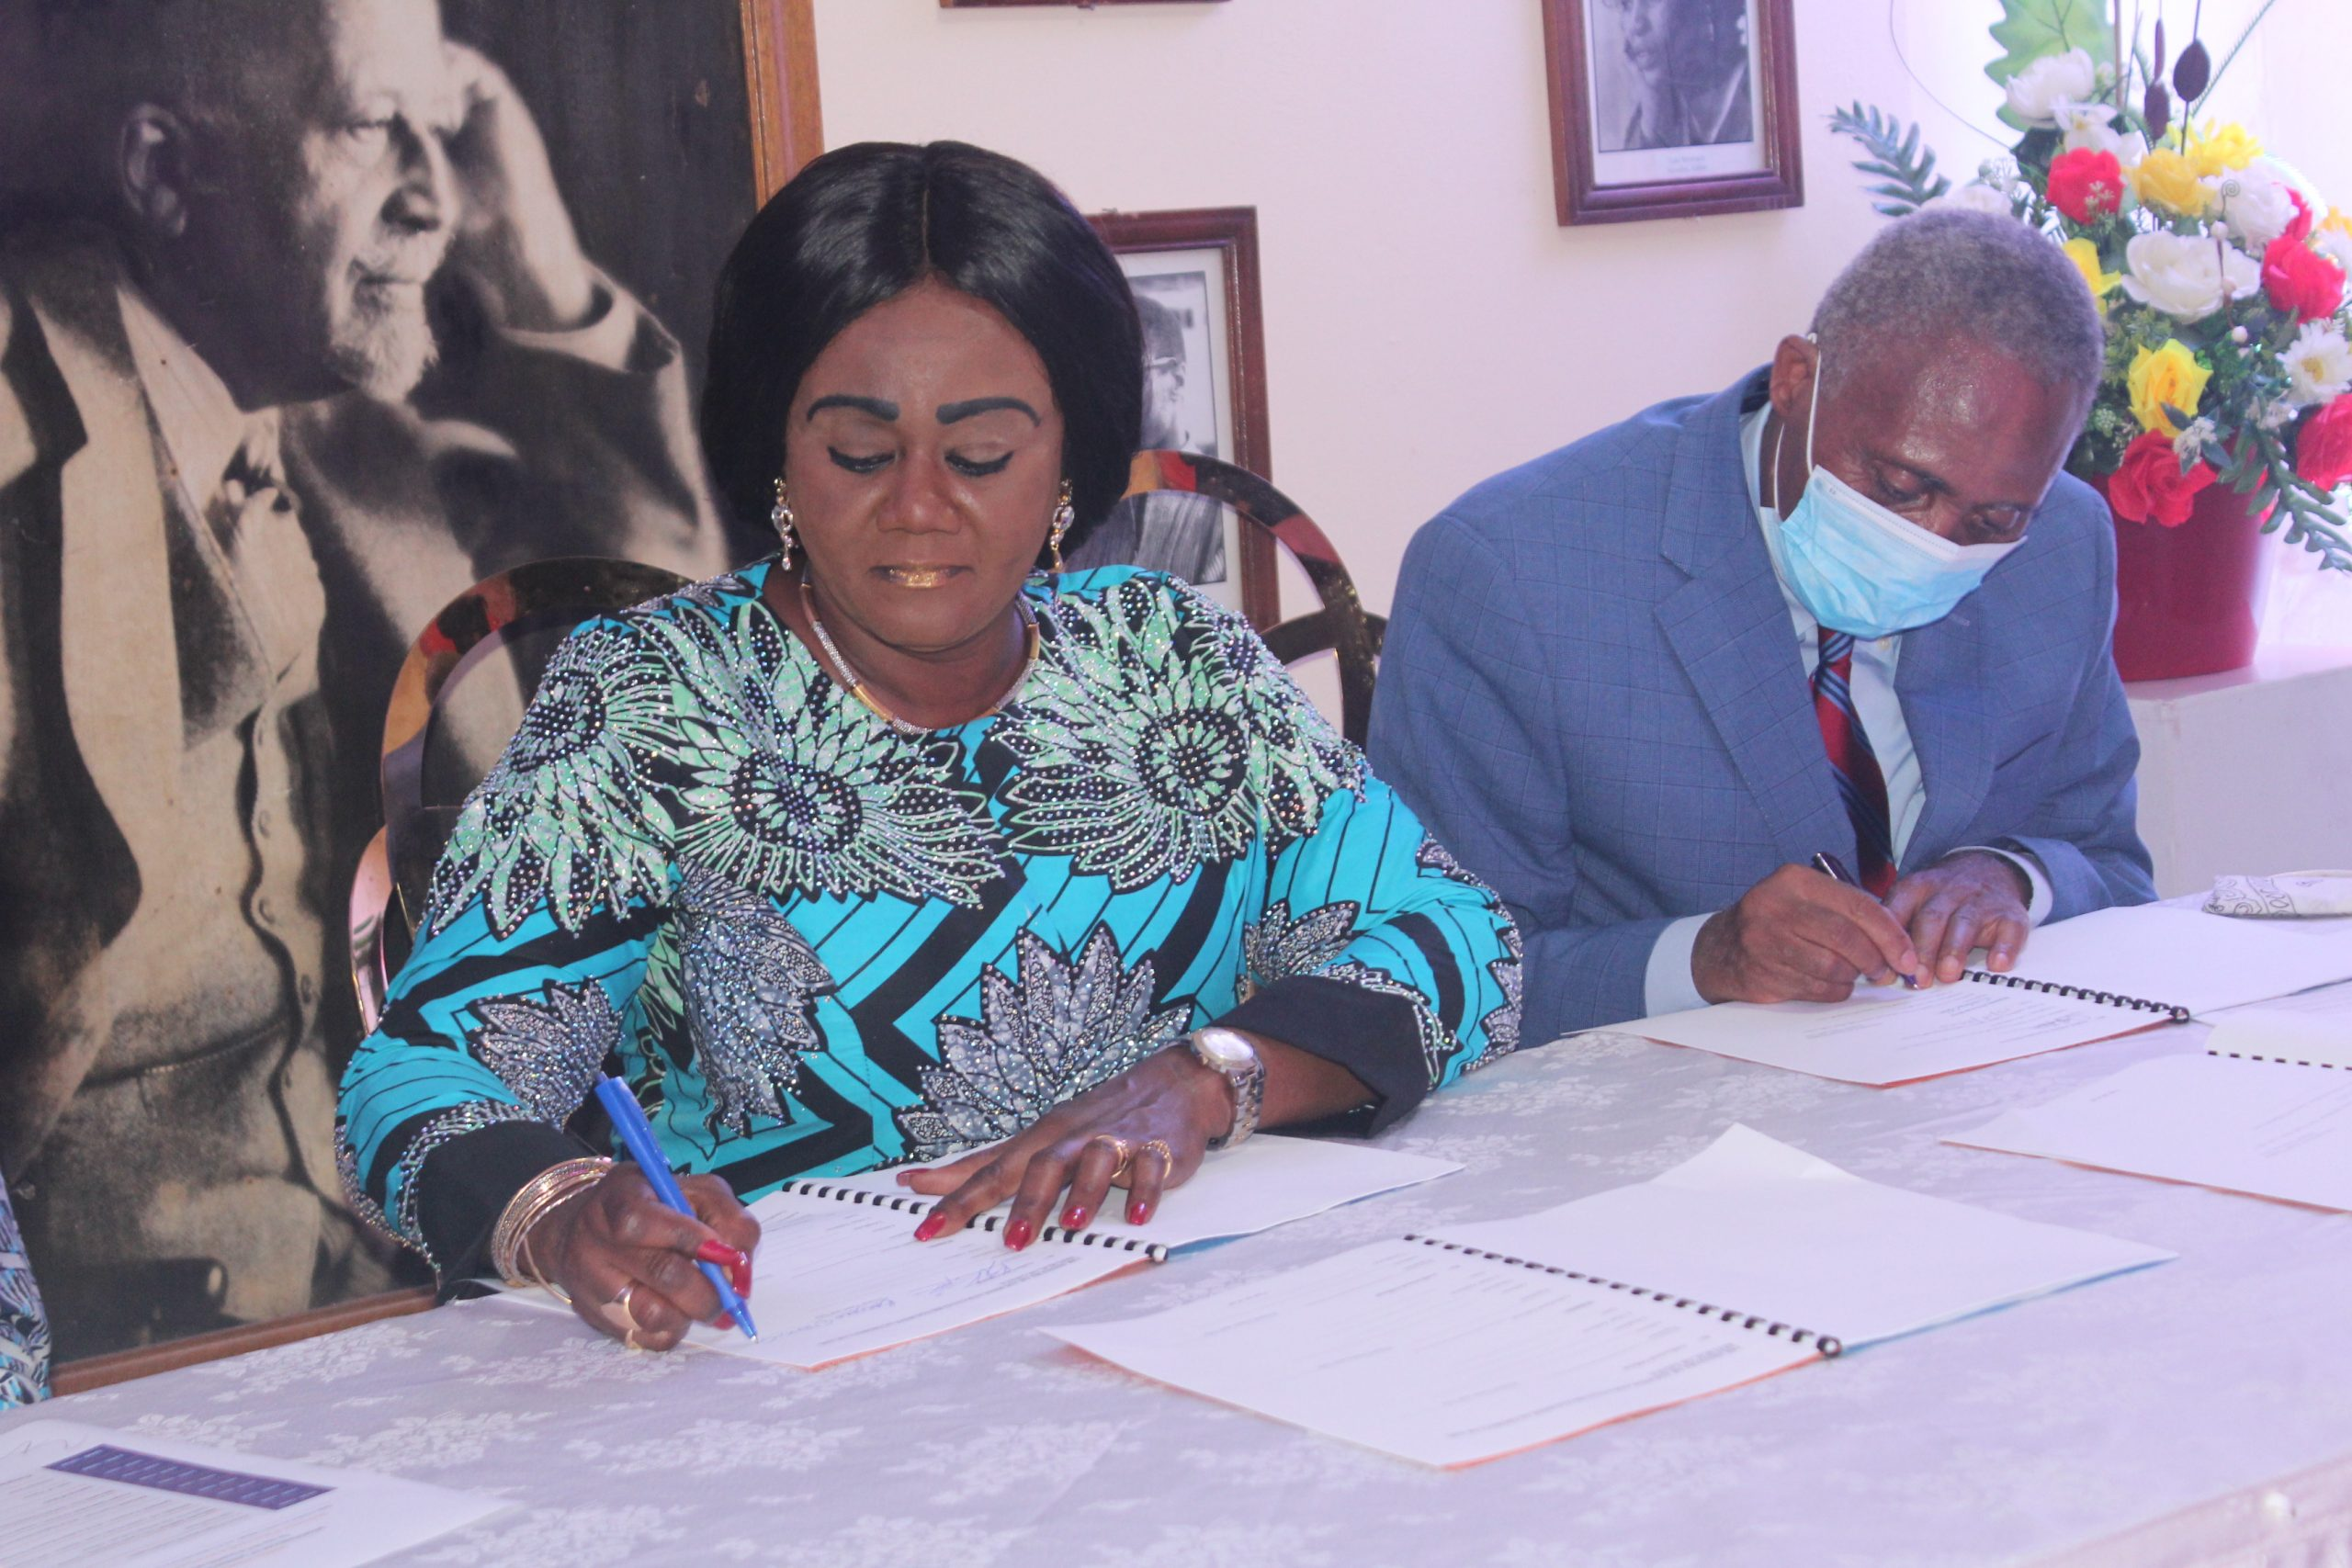 Ghana Gov't and W.E.B Dubois Museum Foundation sign MoU to build museum in honour of icon